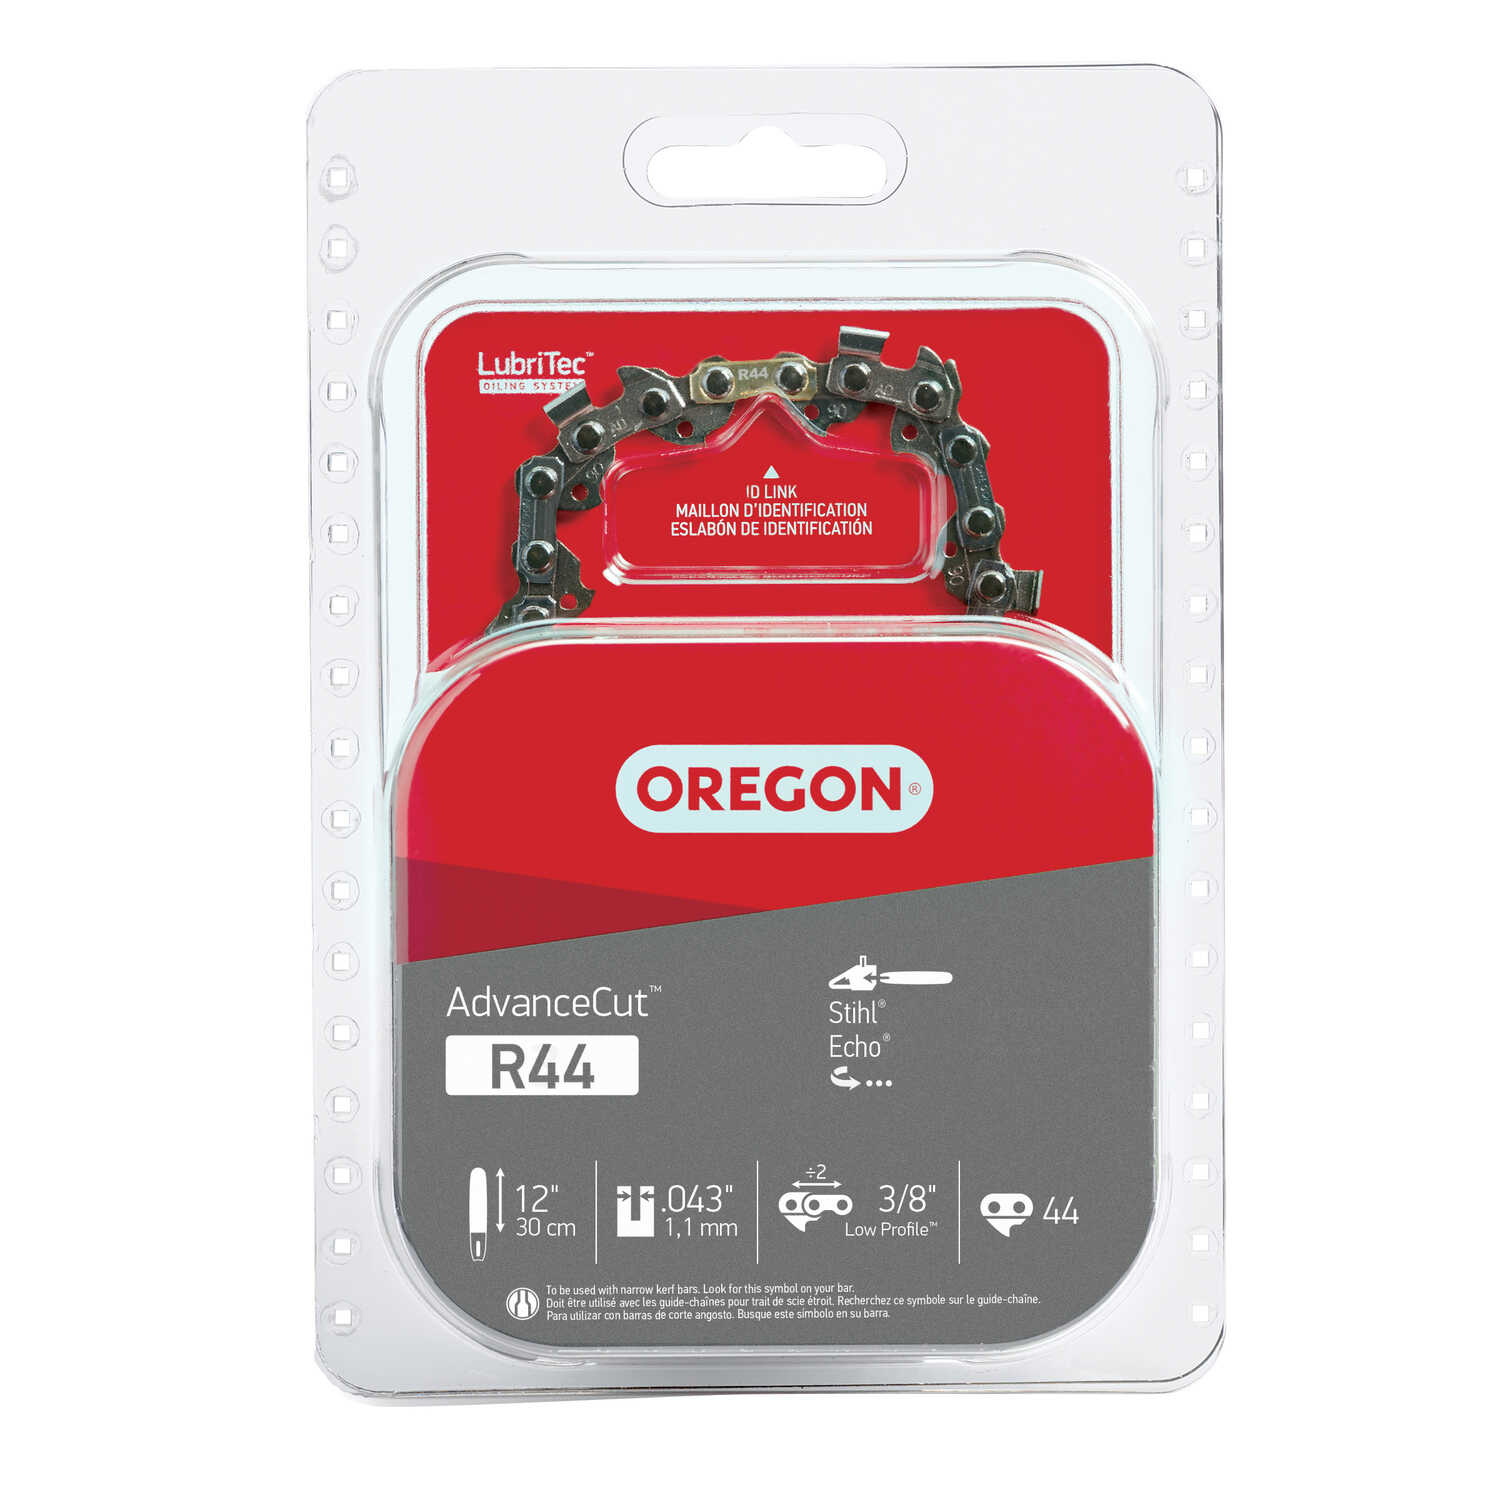 Oregon  Advance Cut  12 in. 44 links Chainsaw Chain